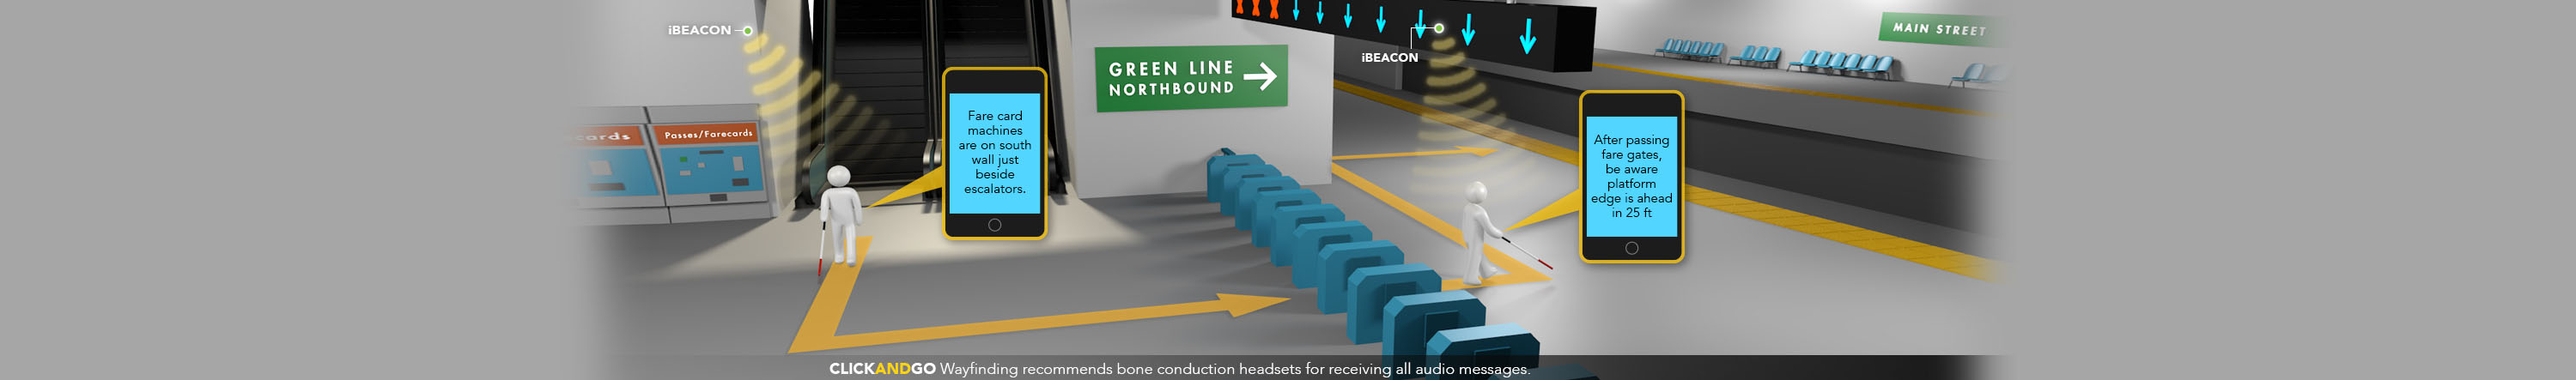 Graphic illustration showing blind pedestrian traveling route from escalator base inside station to subway platform. This image illustrates the messaging support of beacons, as it announces the traveler is 25 feet from the platform edge.